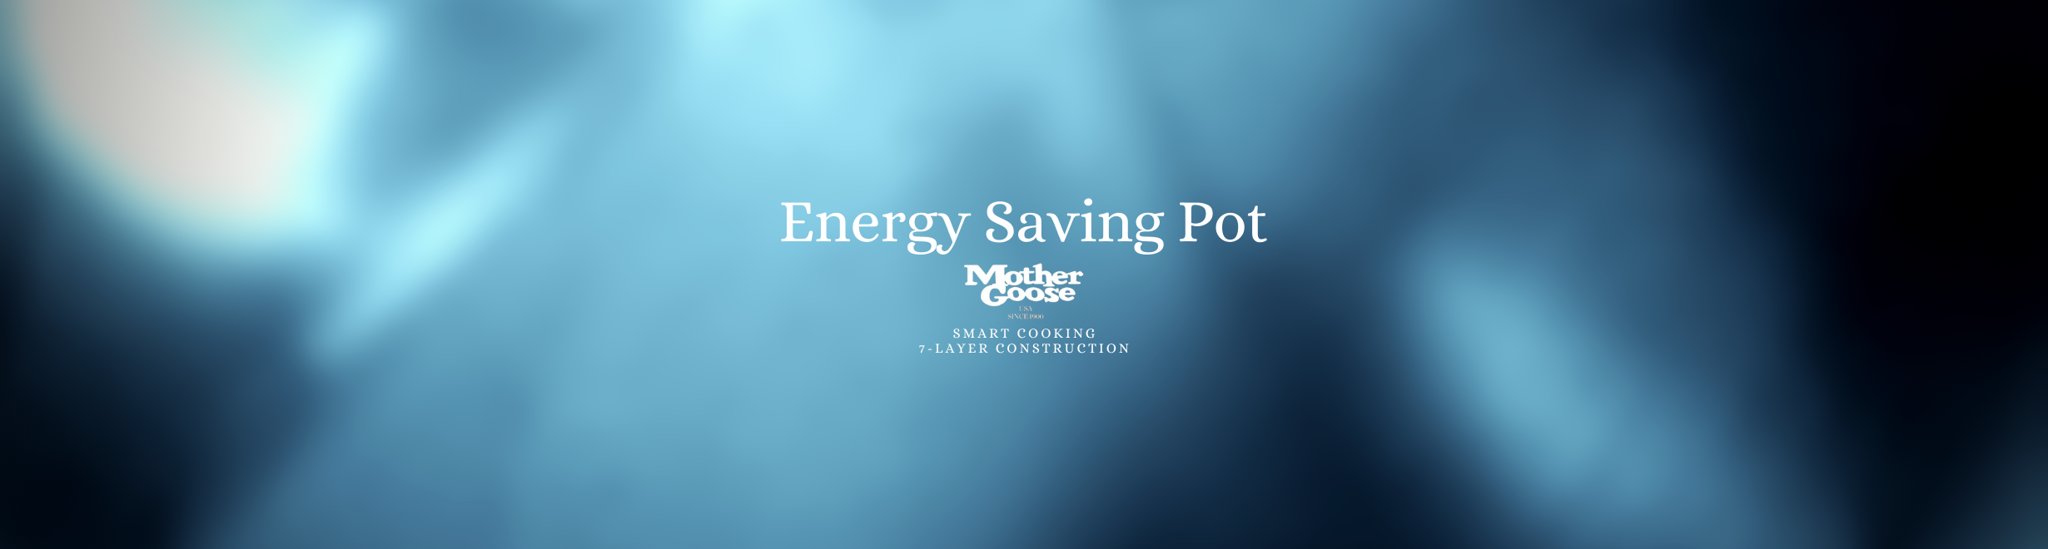 ENERGY SAVING POT